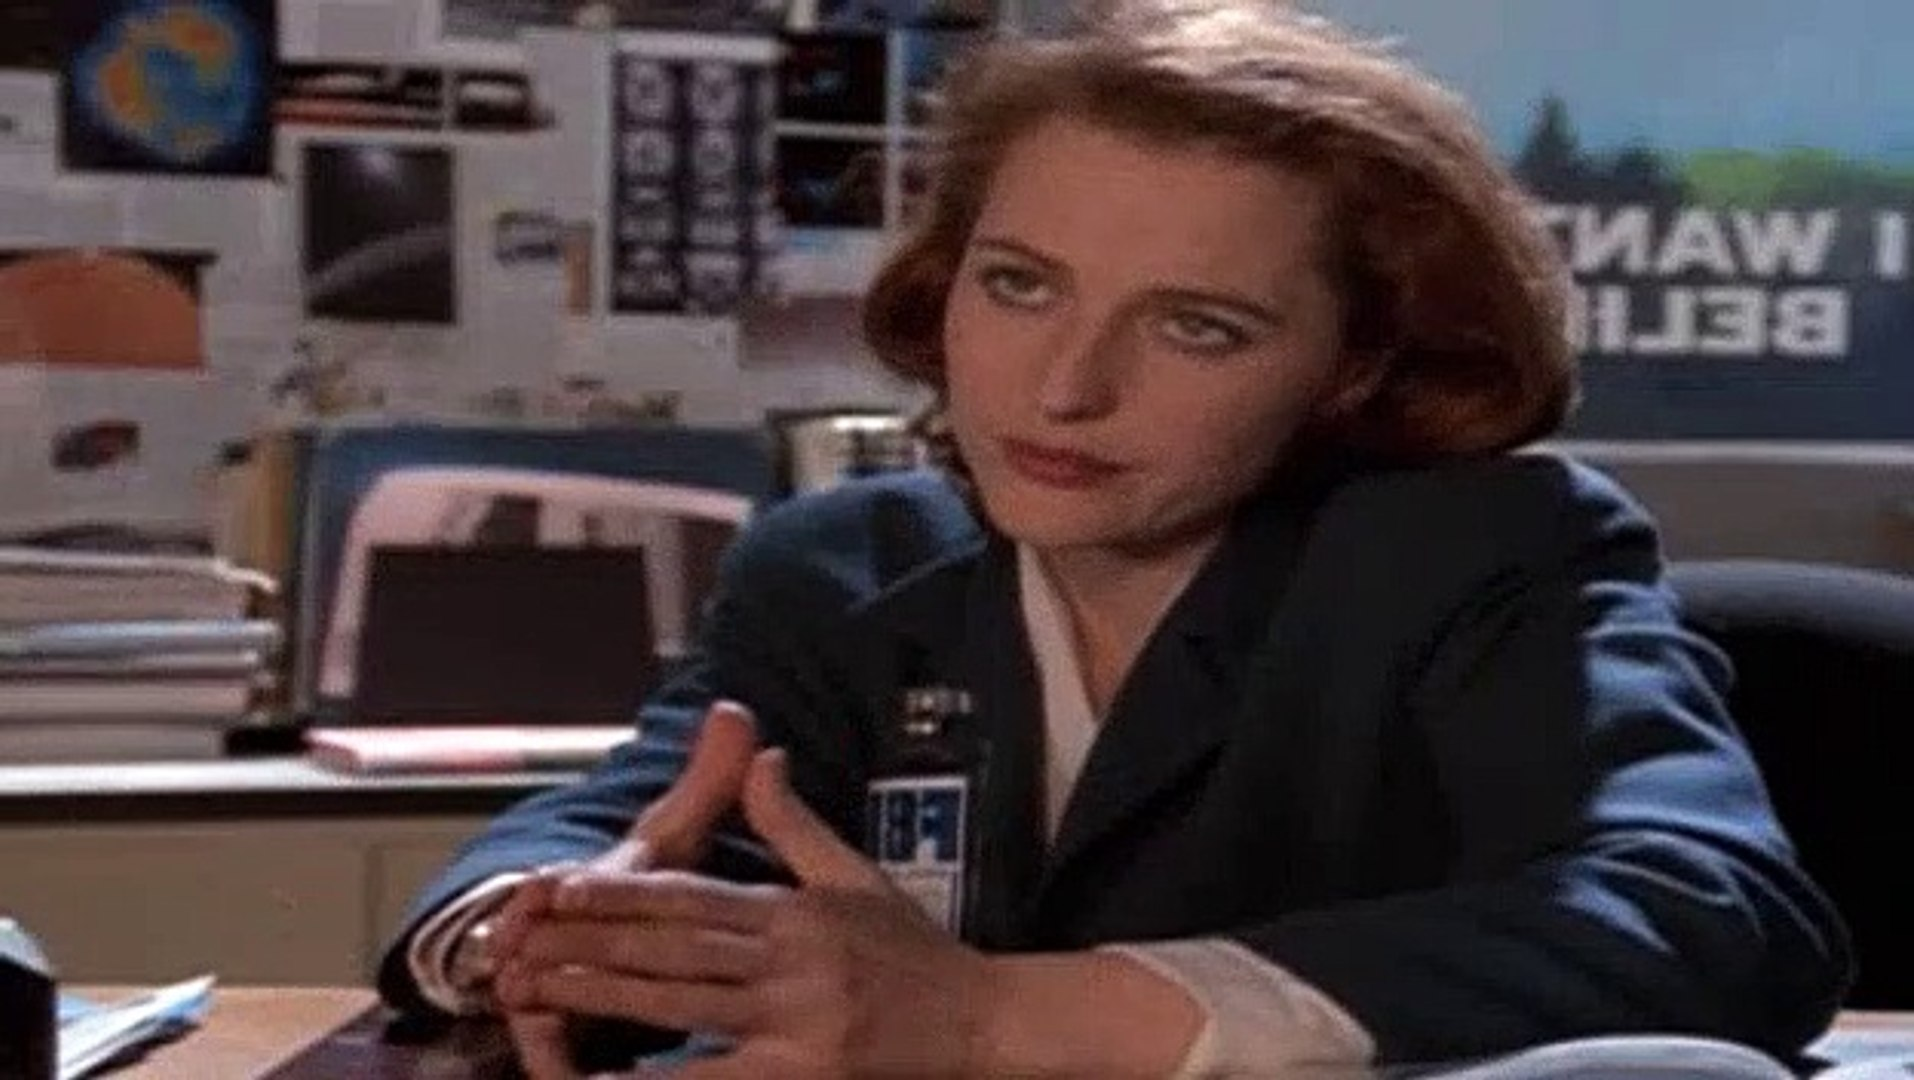 The X-Files Season 3 Episode 20 - Jose Chung's From Outer Space